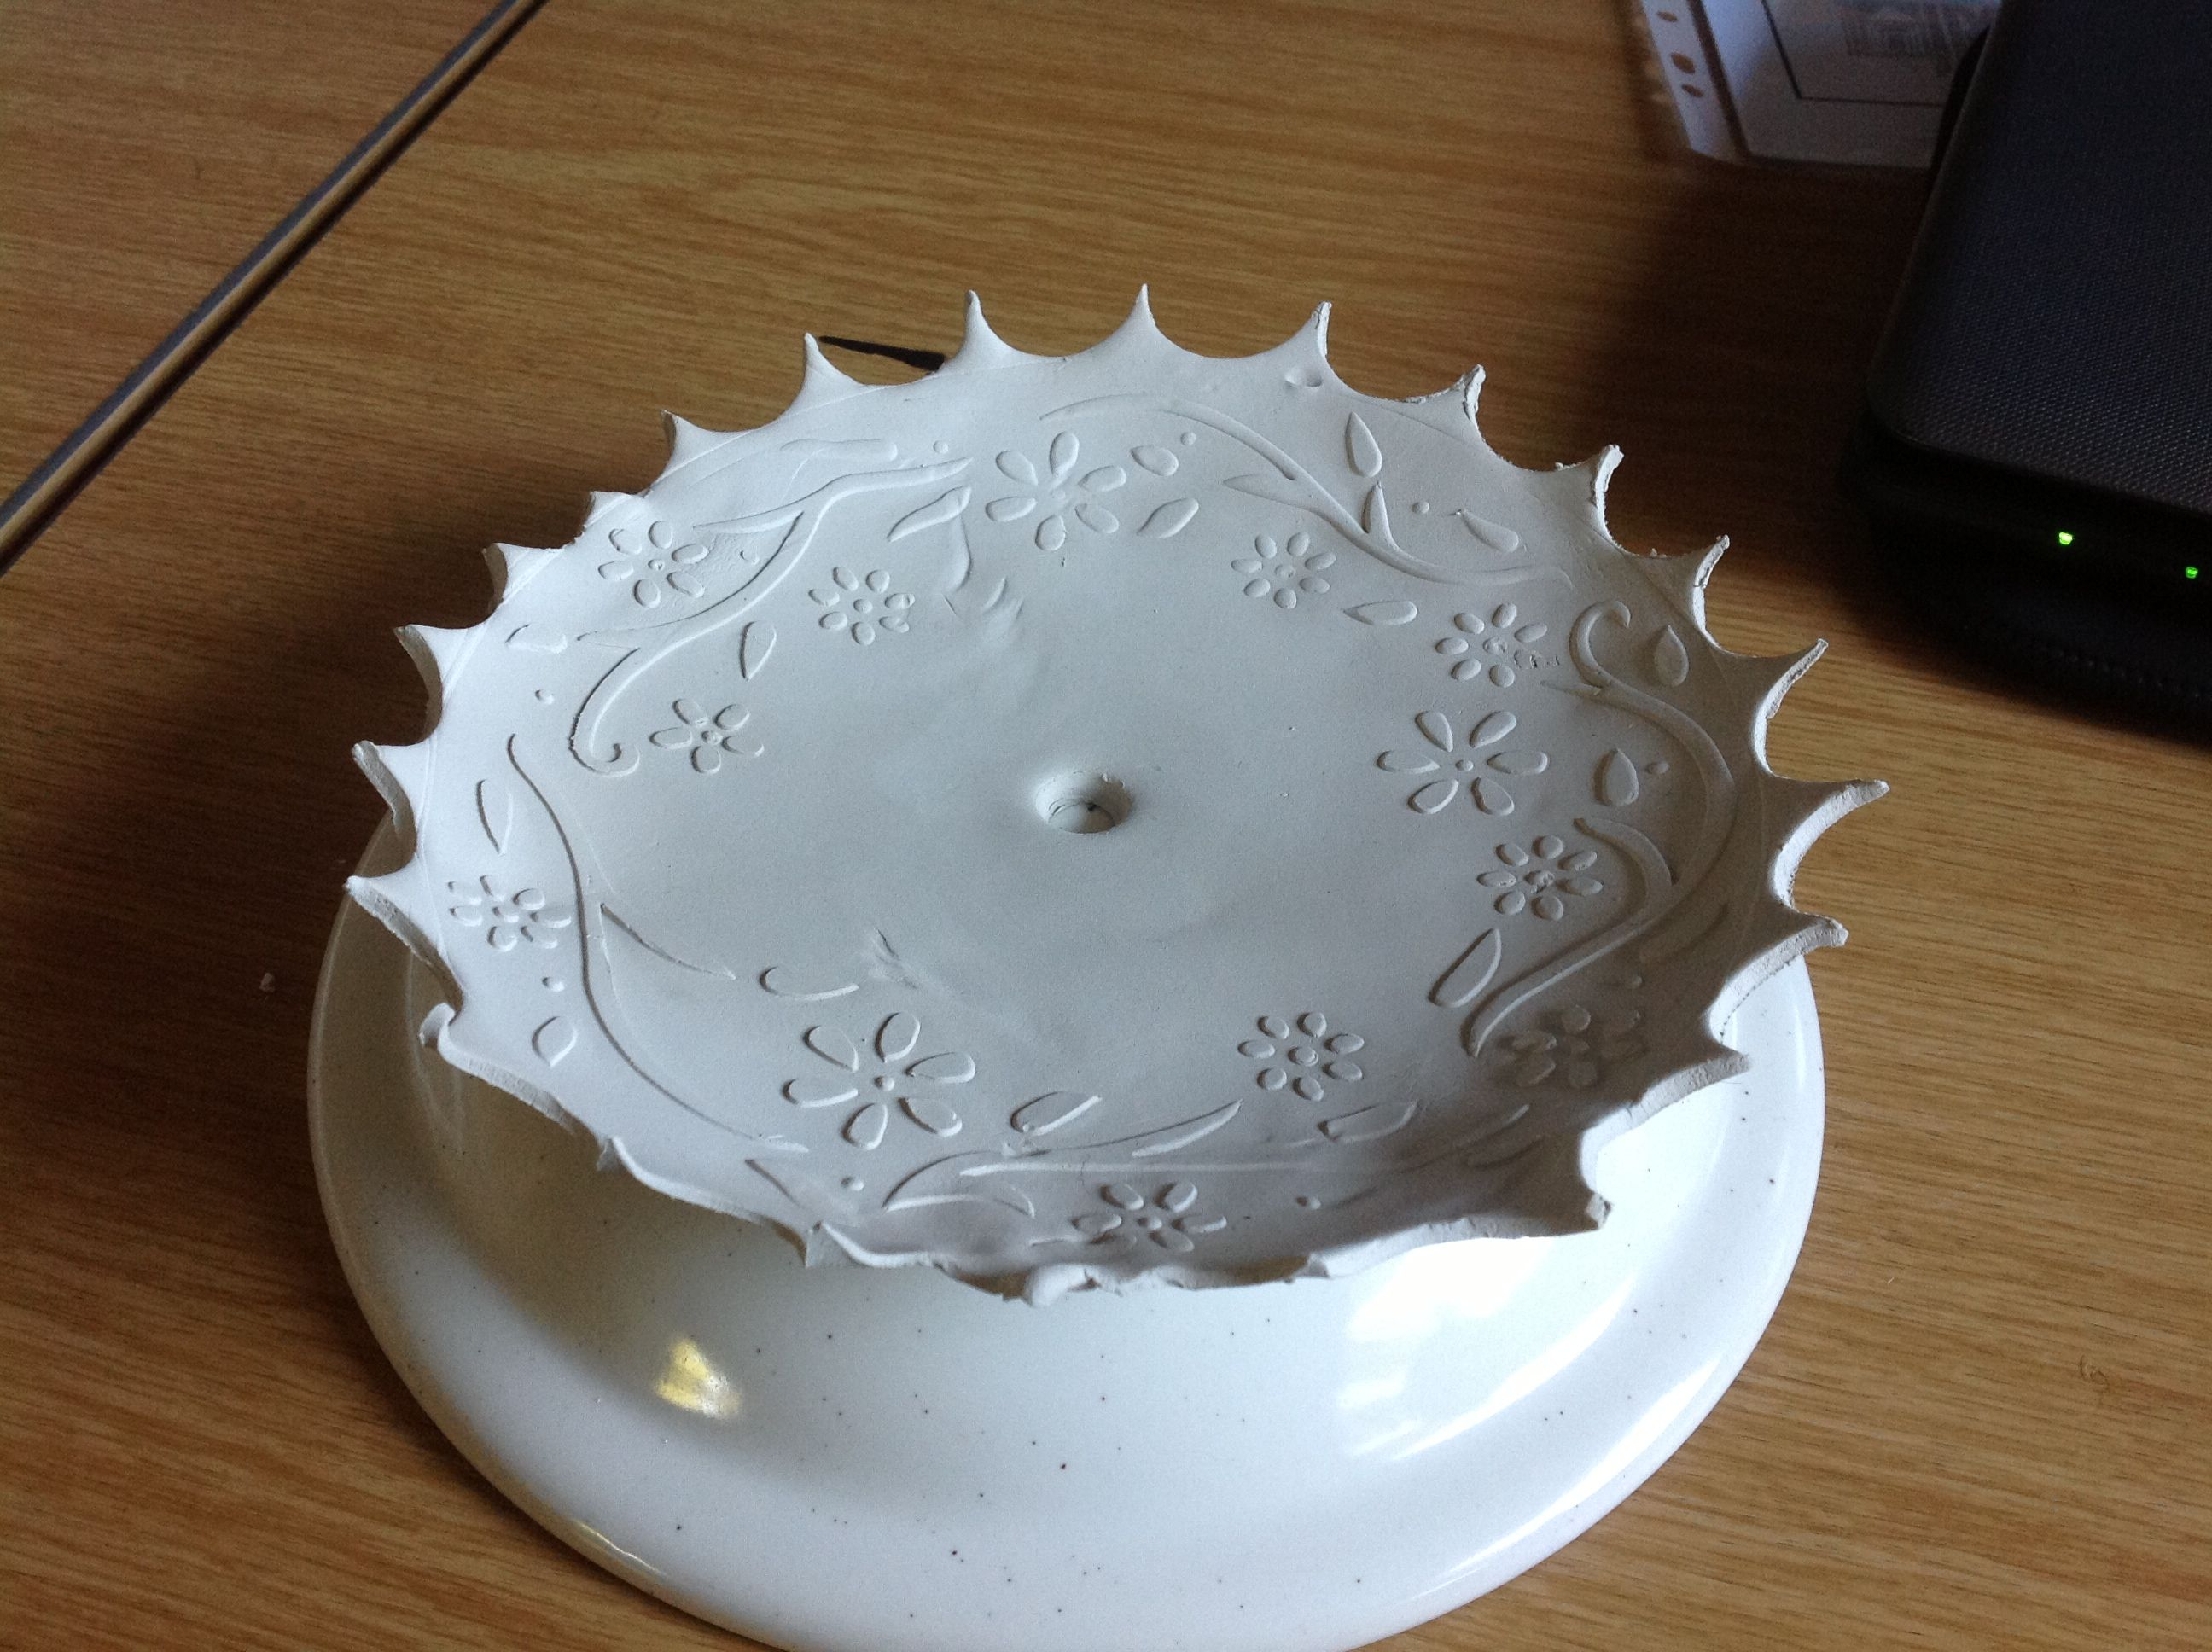 Plate stand. Air dried clay   Used a stencil and dried clay in a suitable sized bowl